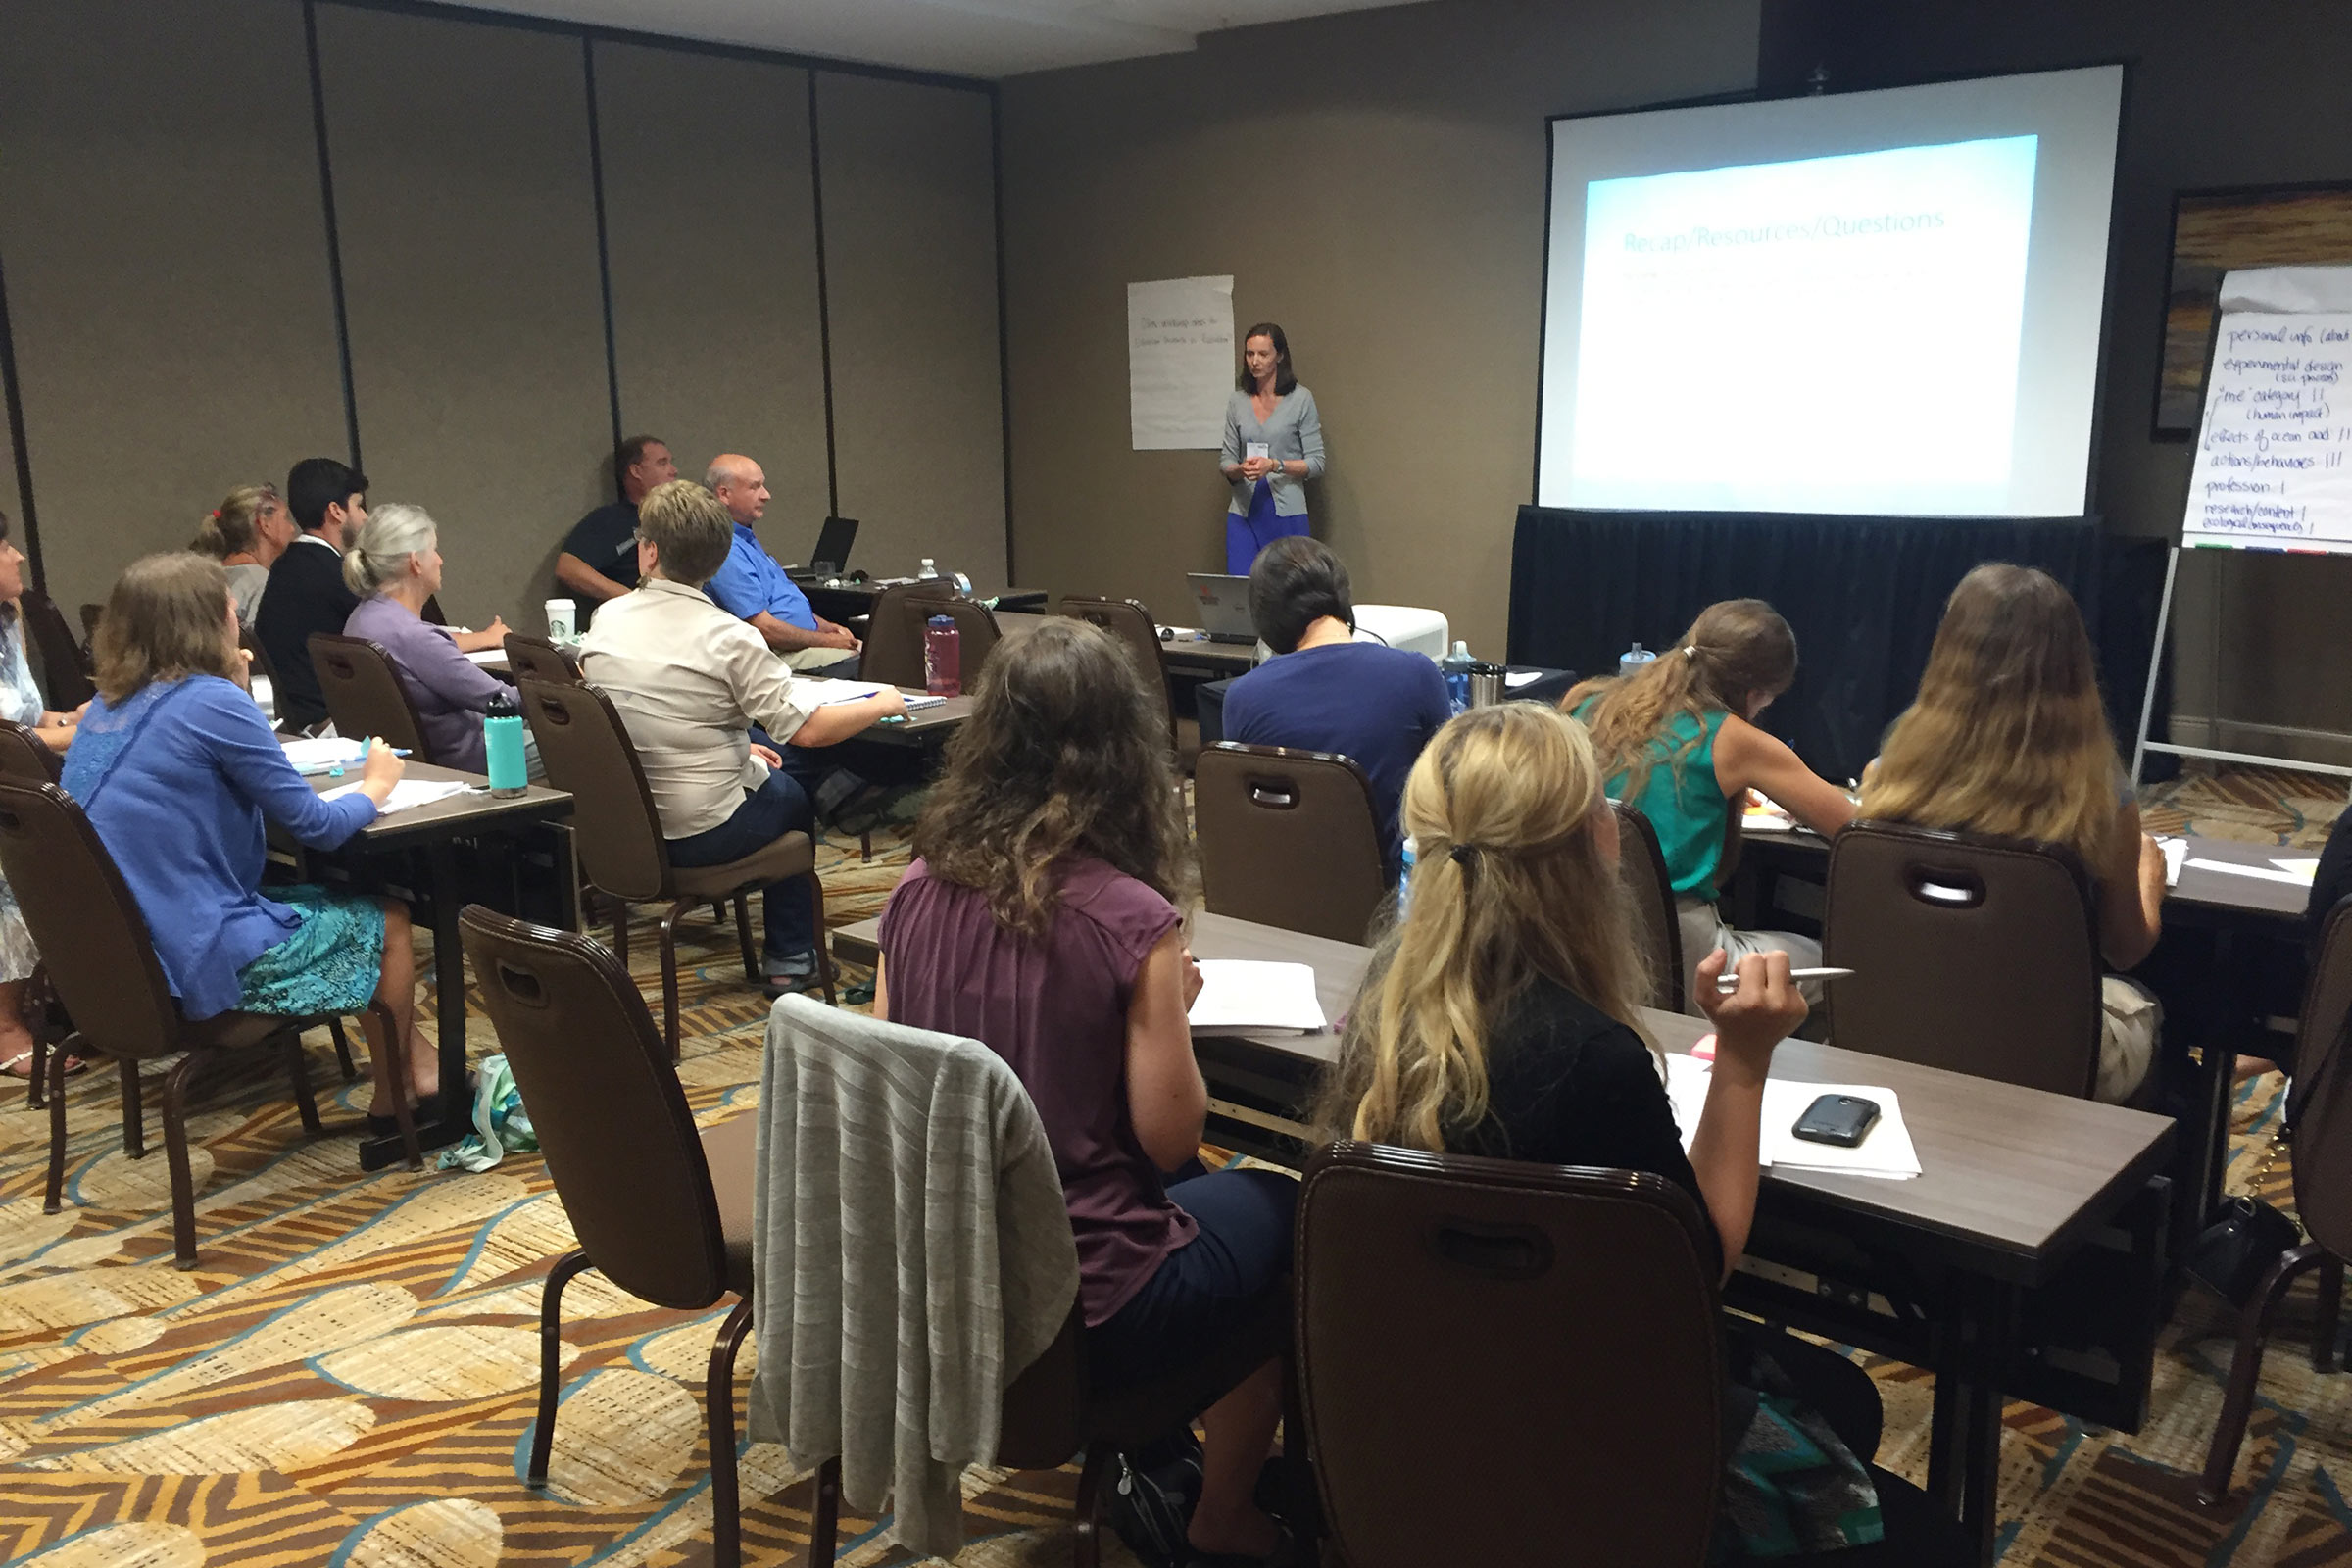 Education Research and Evaluation workshop at the NMEA 2016 conference in Orlando